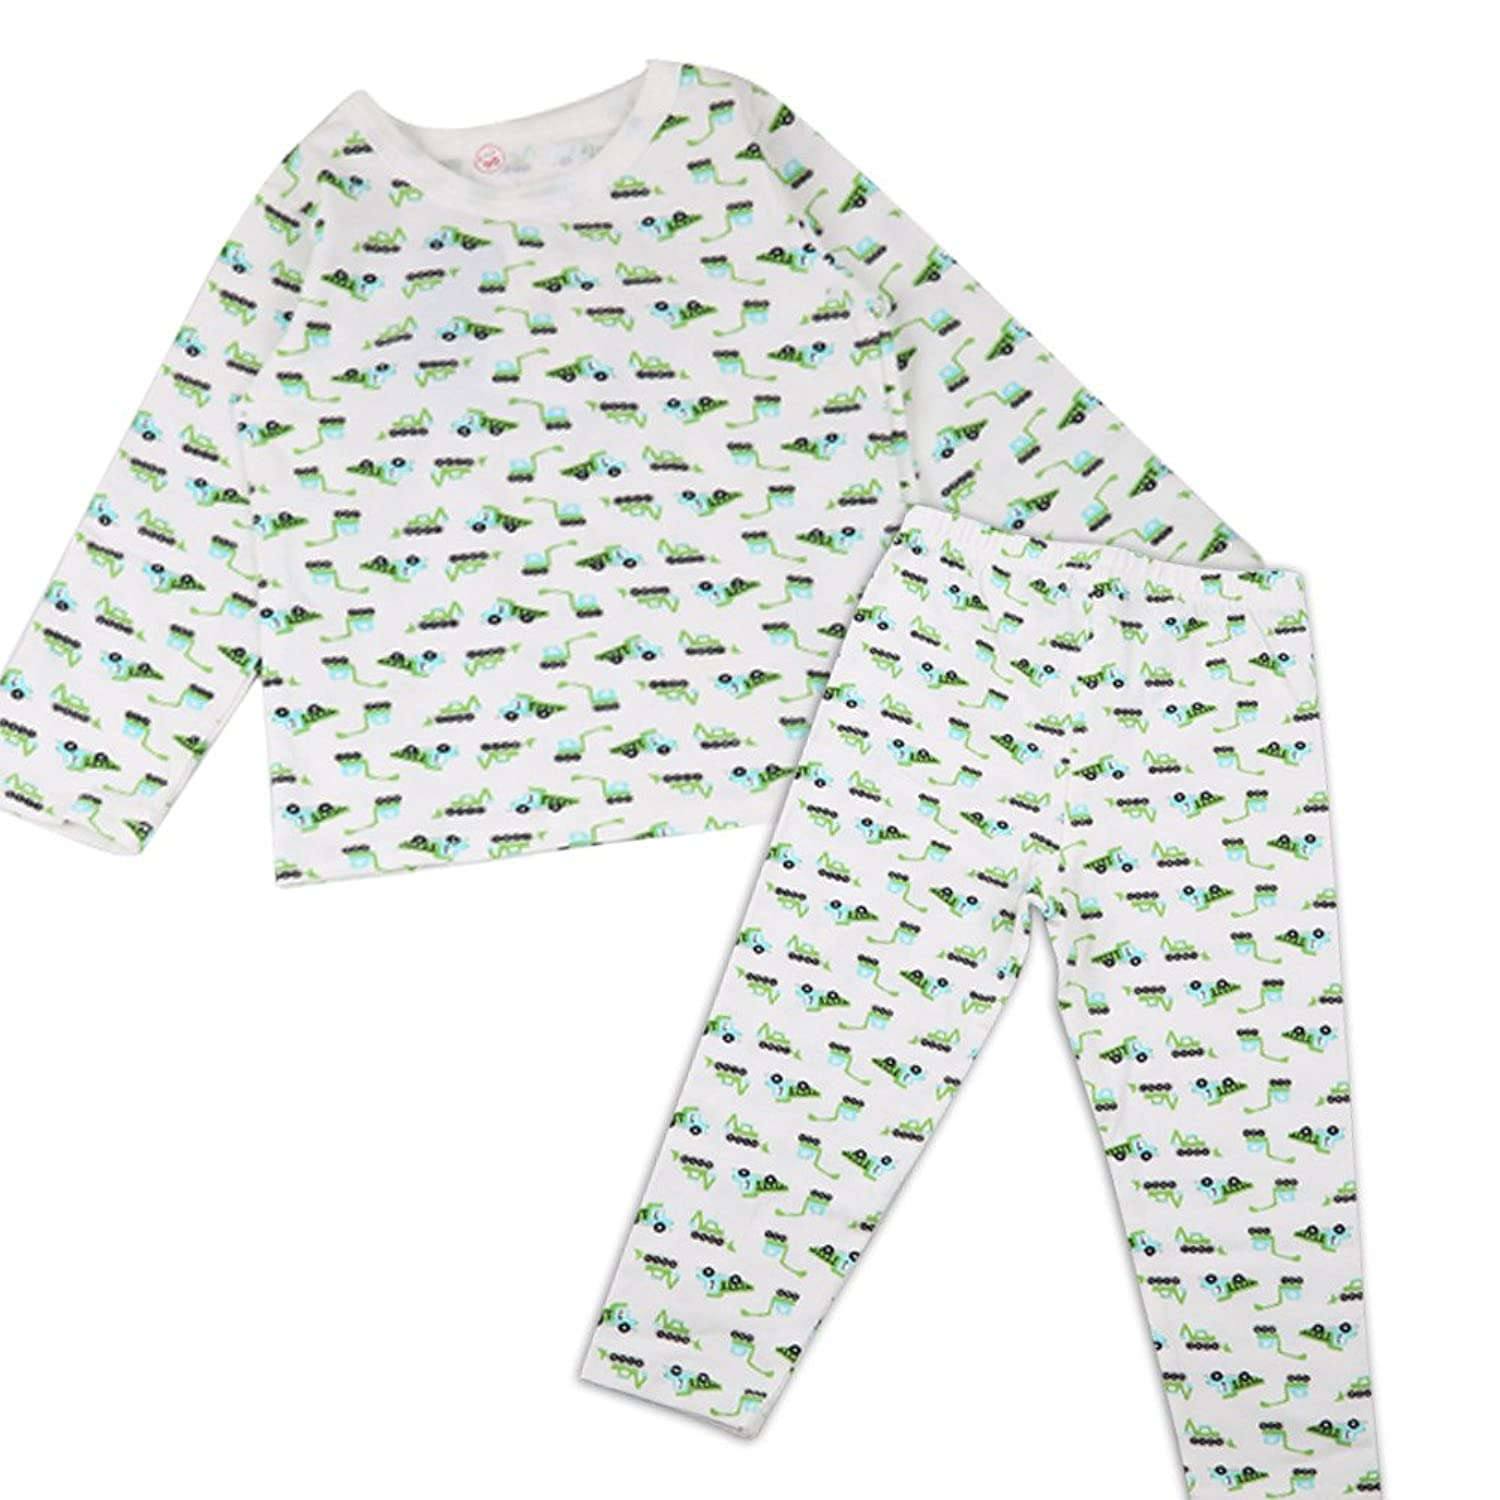 new SUNVENO Little Boys¡¯Cotton Longsleeve Top and Pants Color Green Crane save more